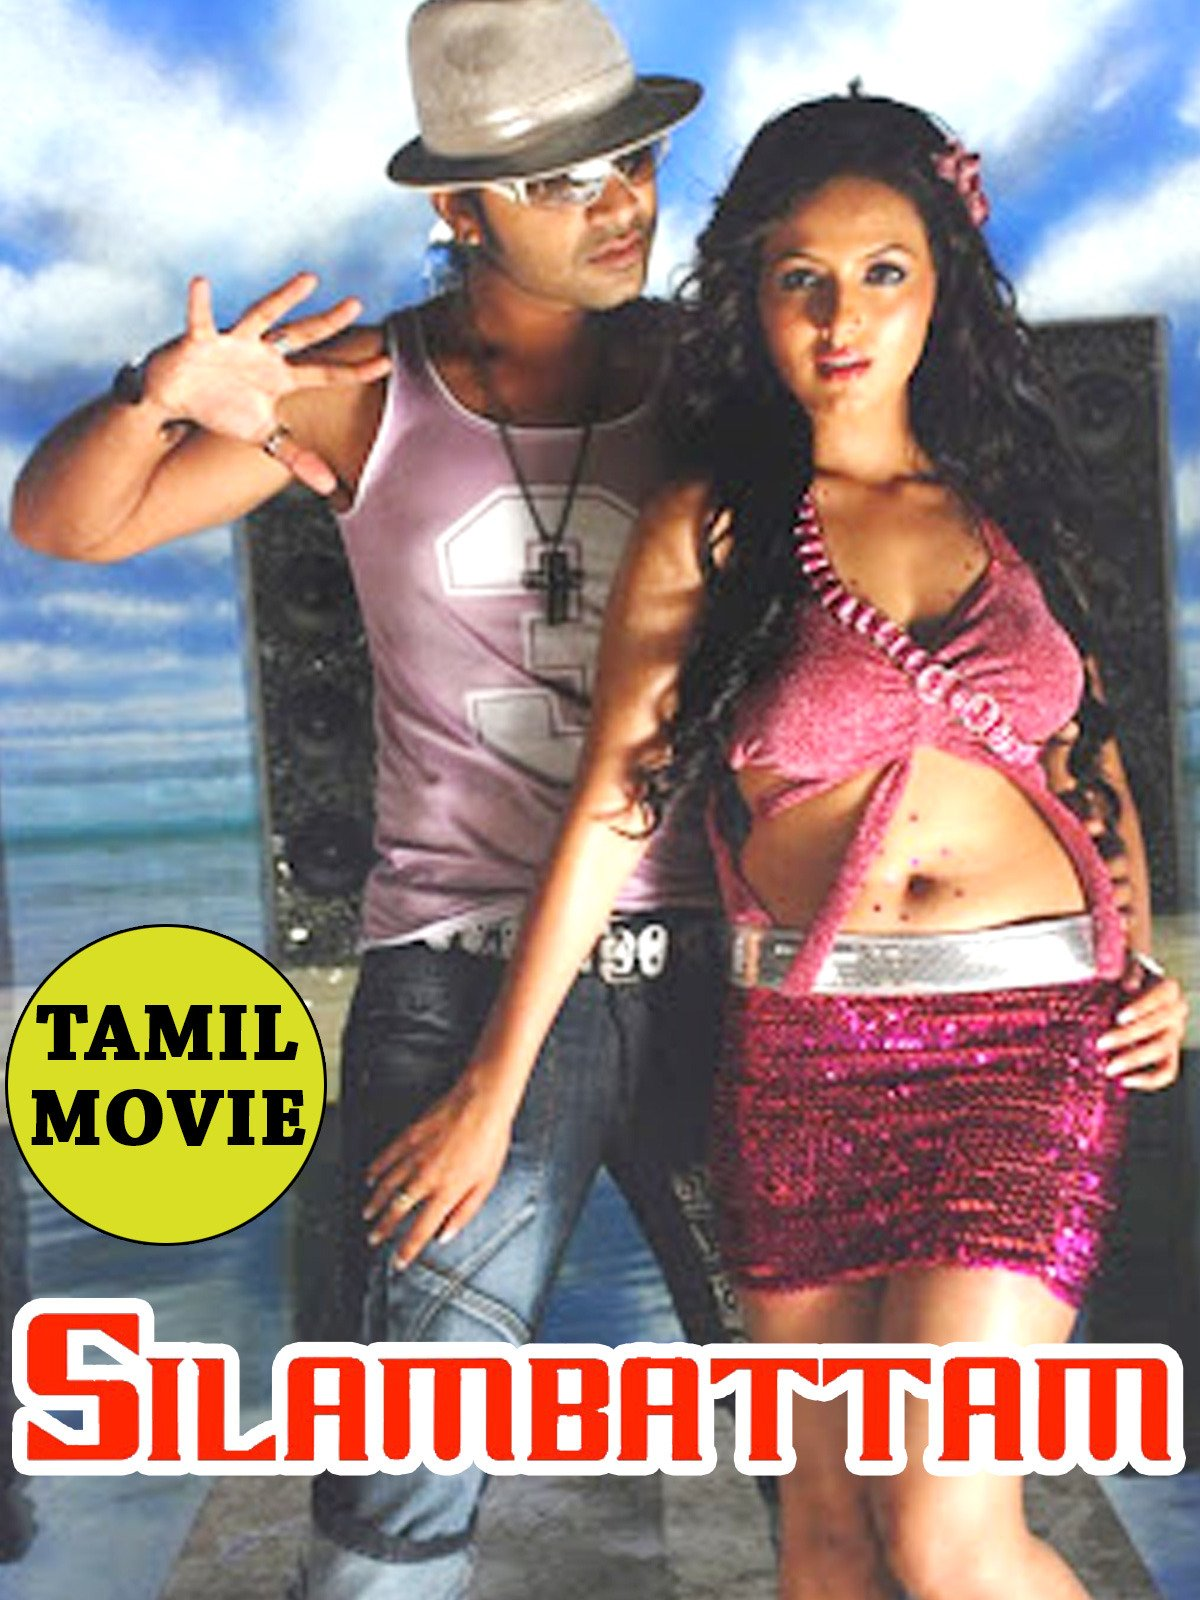 Download latest tamil mp3 songs 2008.